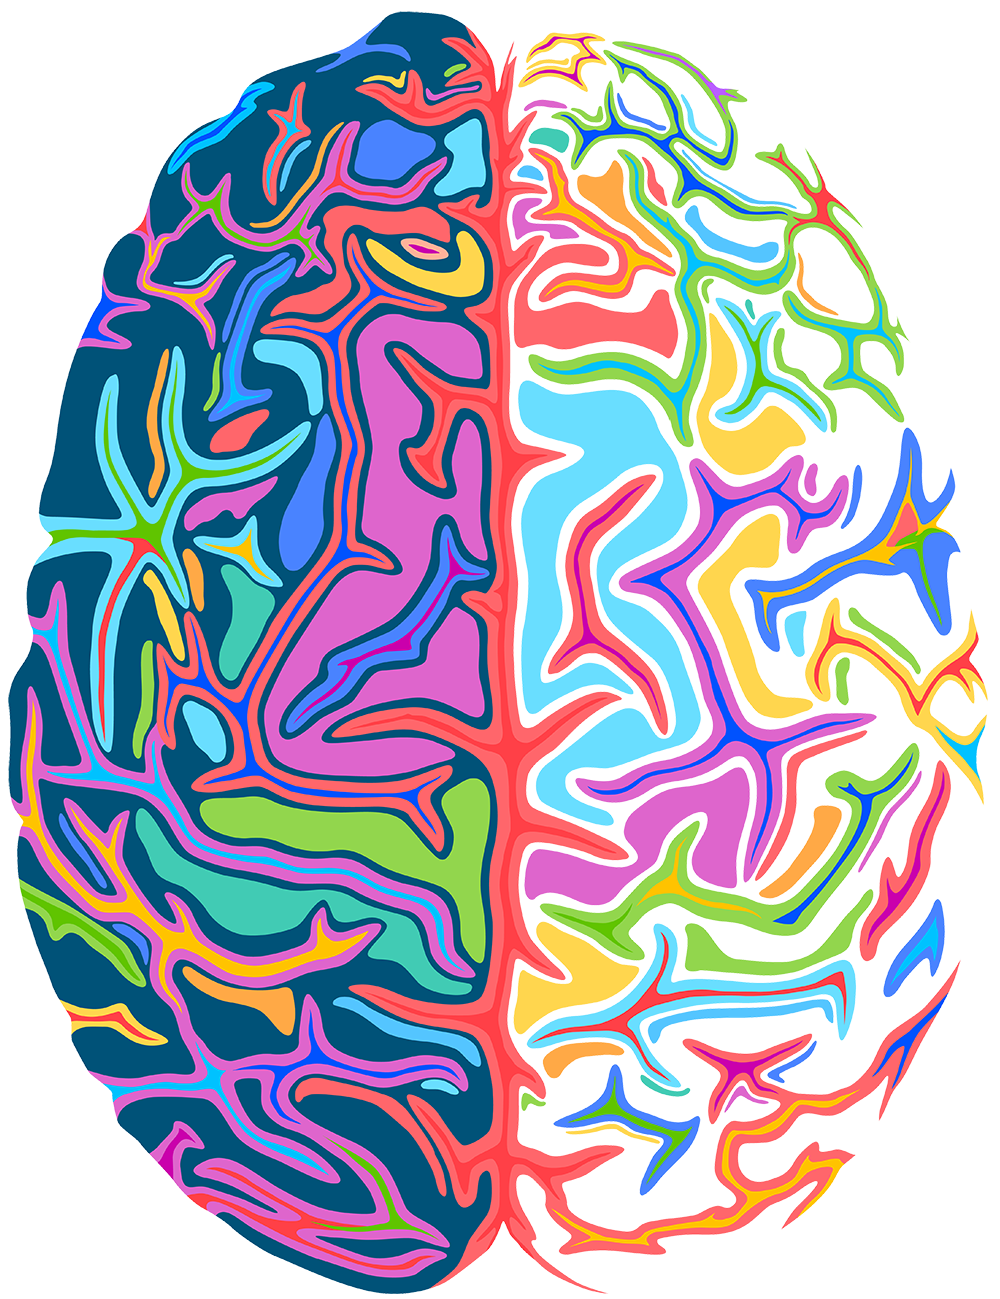 psychedelic brain 1